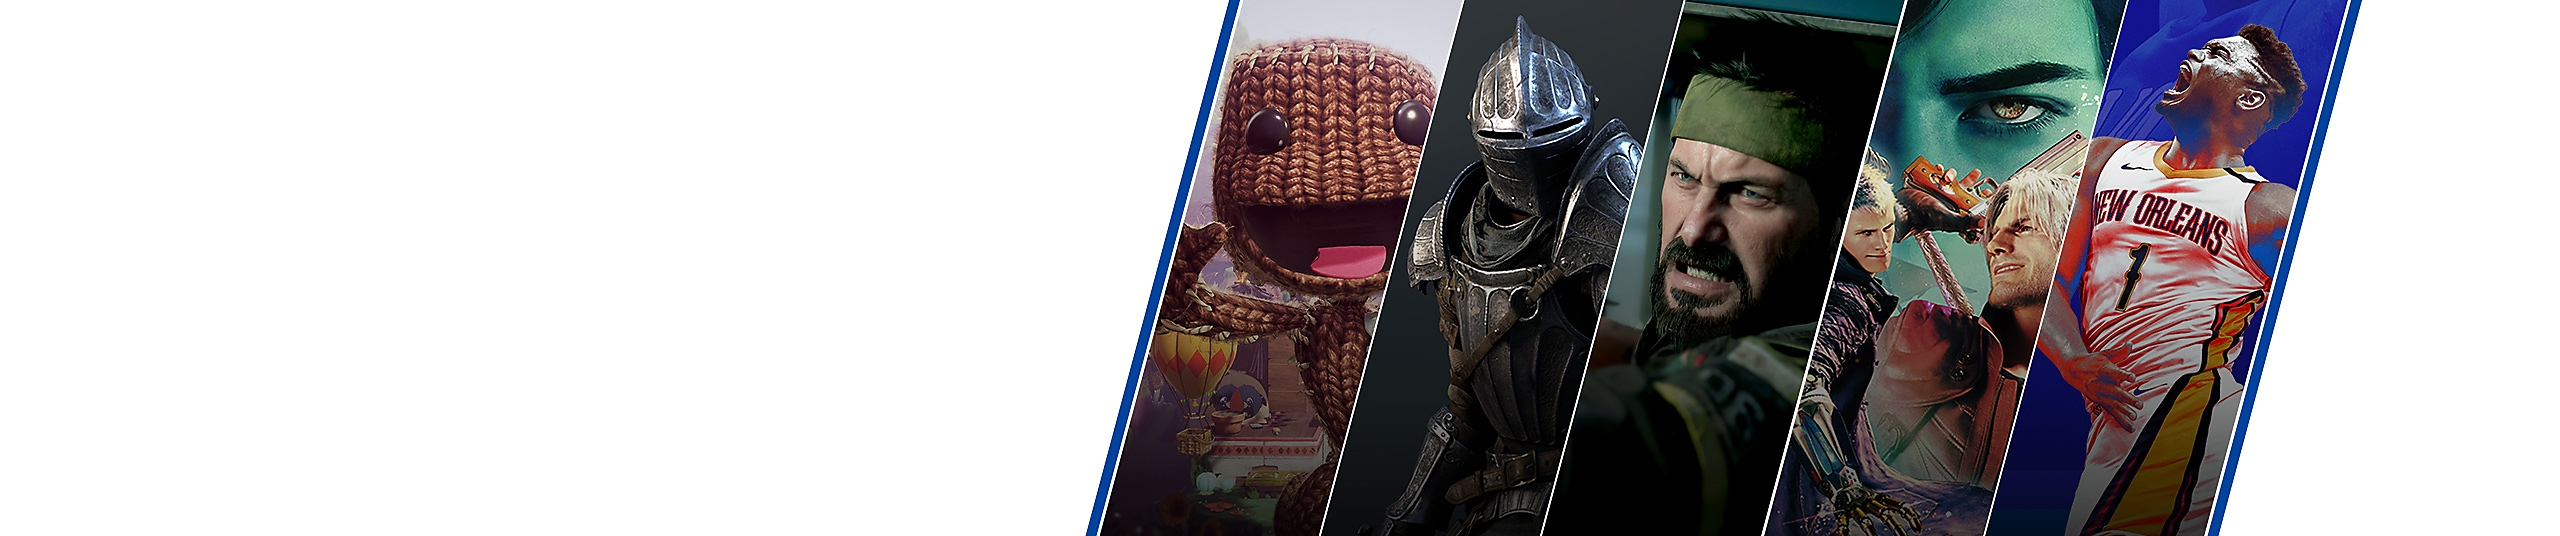 PlayStation Branded Promotional Imagery